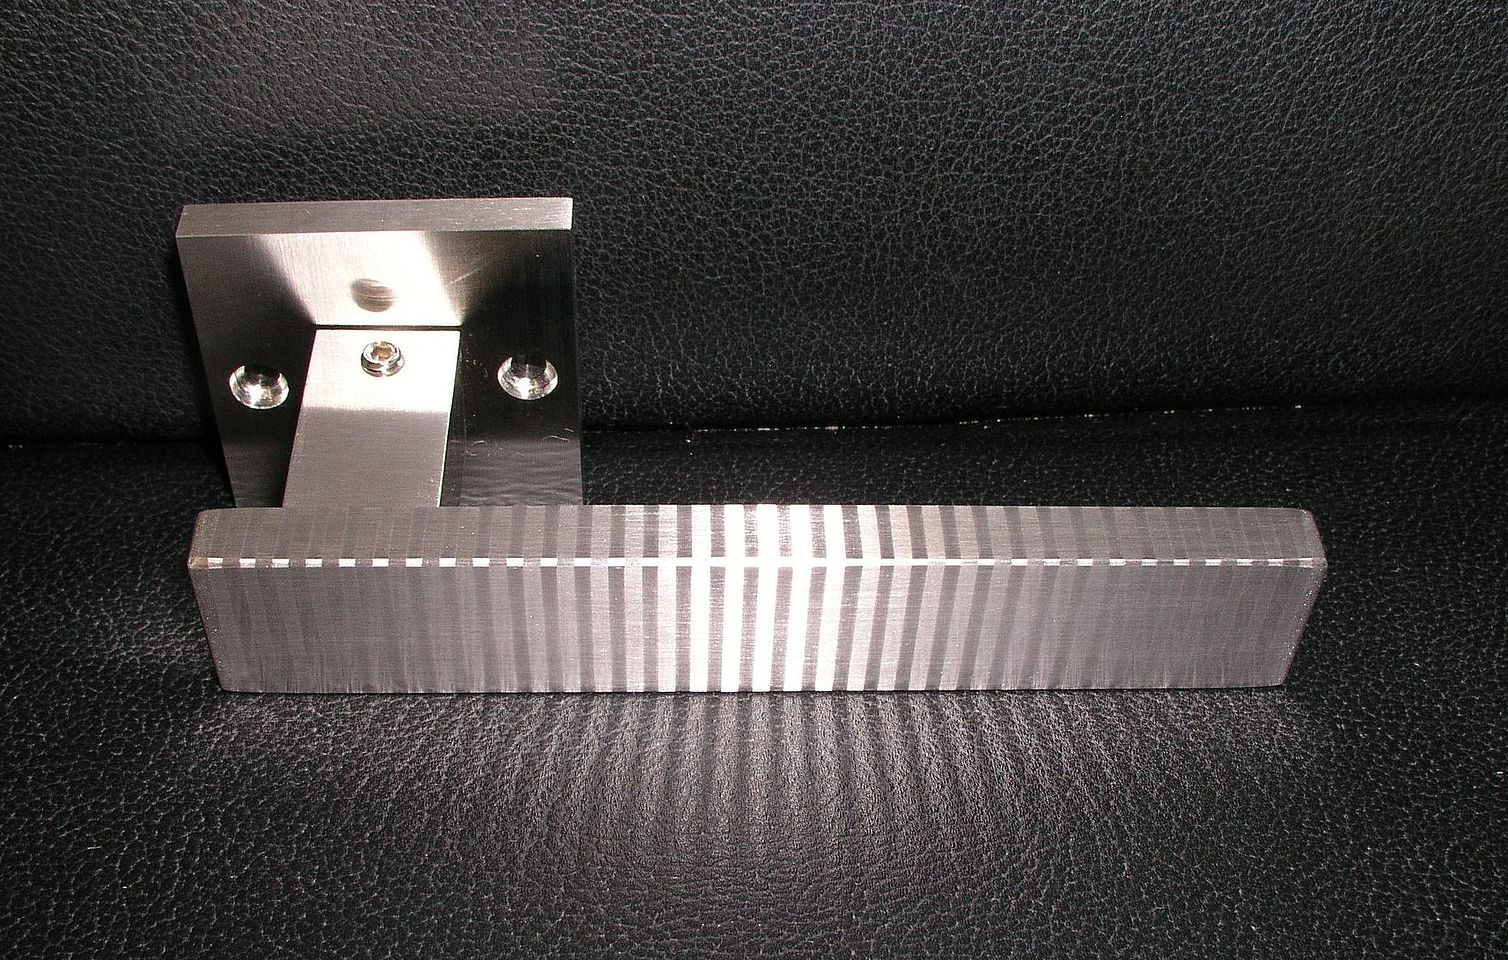 Products From Stainless Steel And Aluminium Inox Schleiftechnik